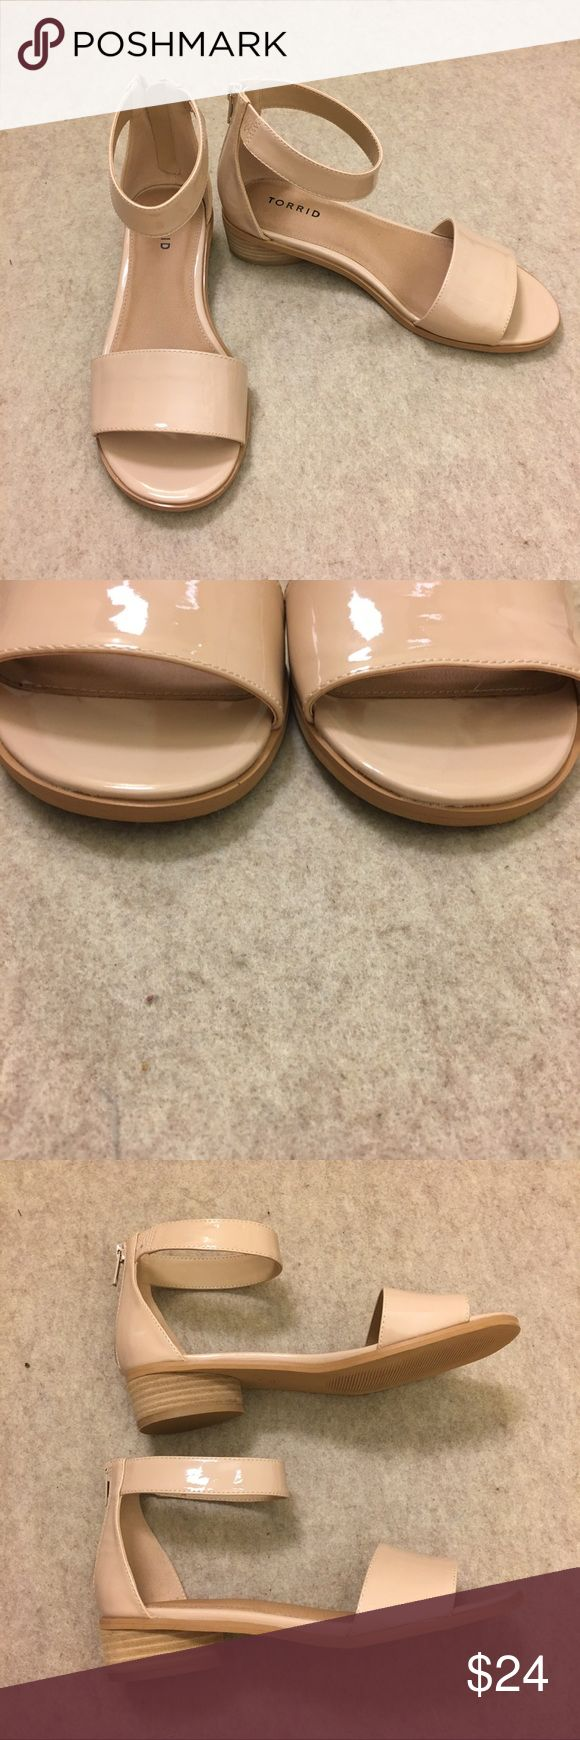 Torrid Patent Faux Leather Mini Heels Nude Beige 9 Torrid Patent Faux Leather Mini Heels Women's Nude Beige Size 9 Wide Zip Up Ankle Strap  Gently used, light signs of wear from normal use. Please see all photos. torrid Shoes Heels